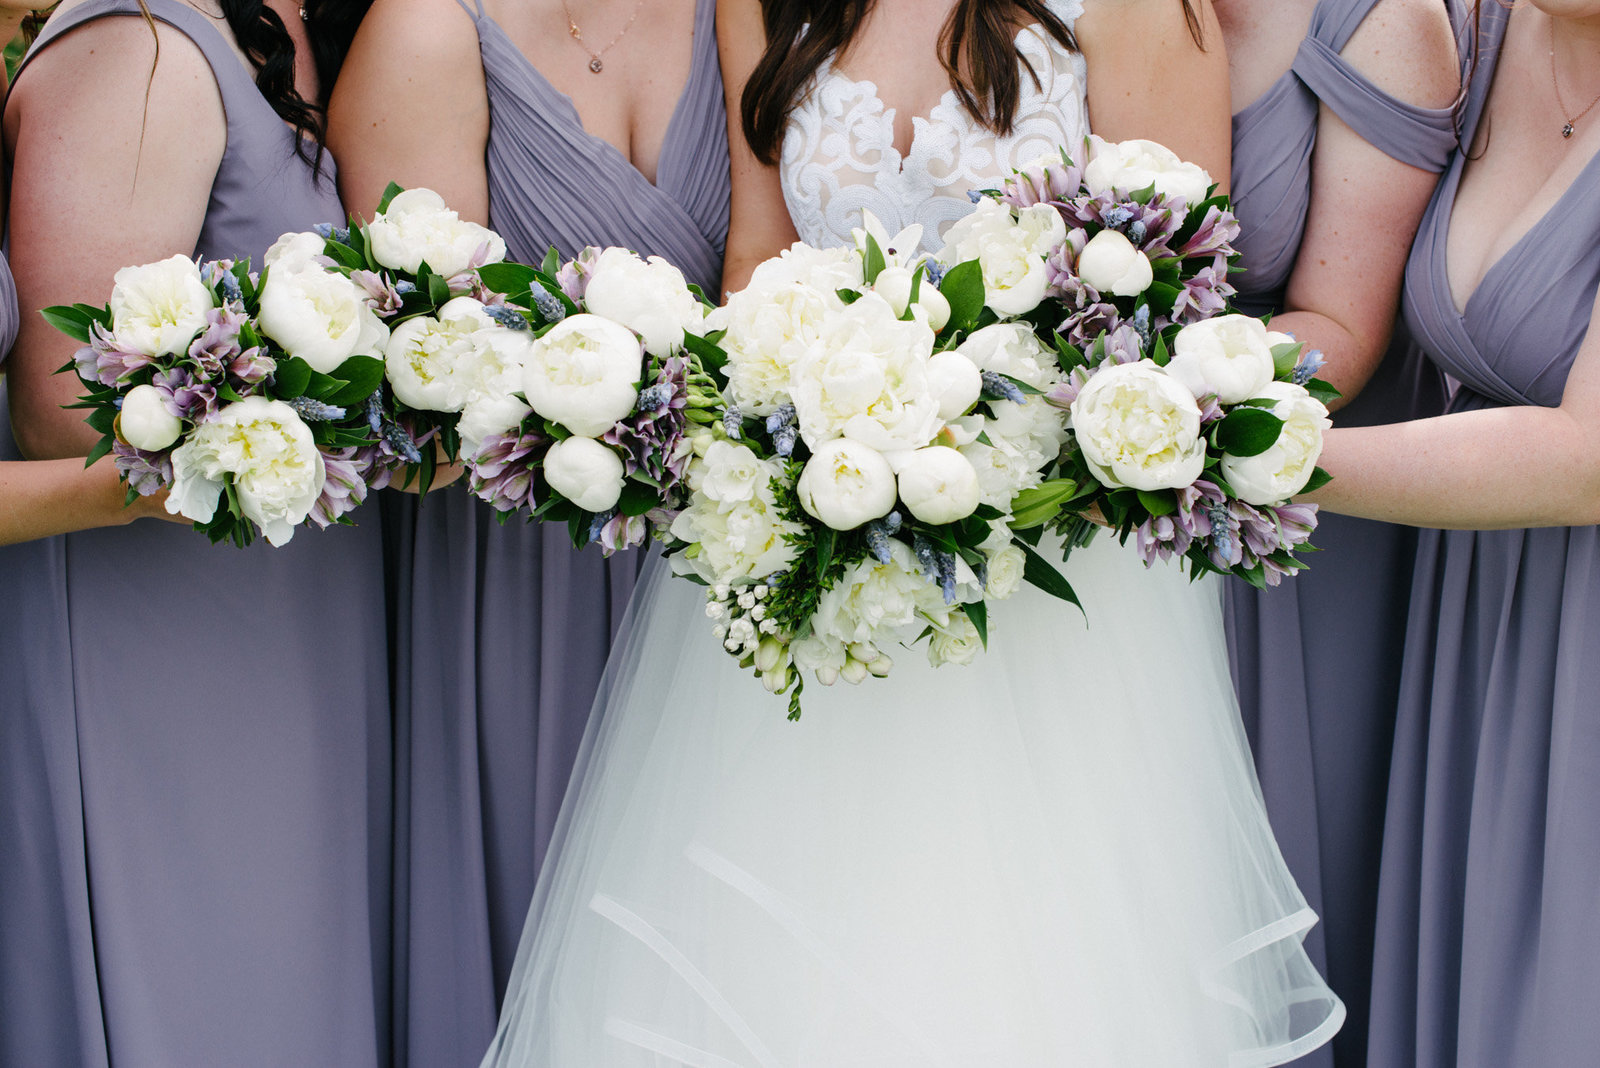 bridesmaids with flowers in lavender and white